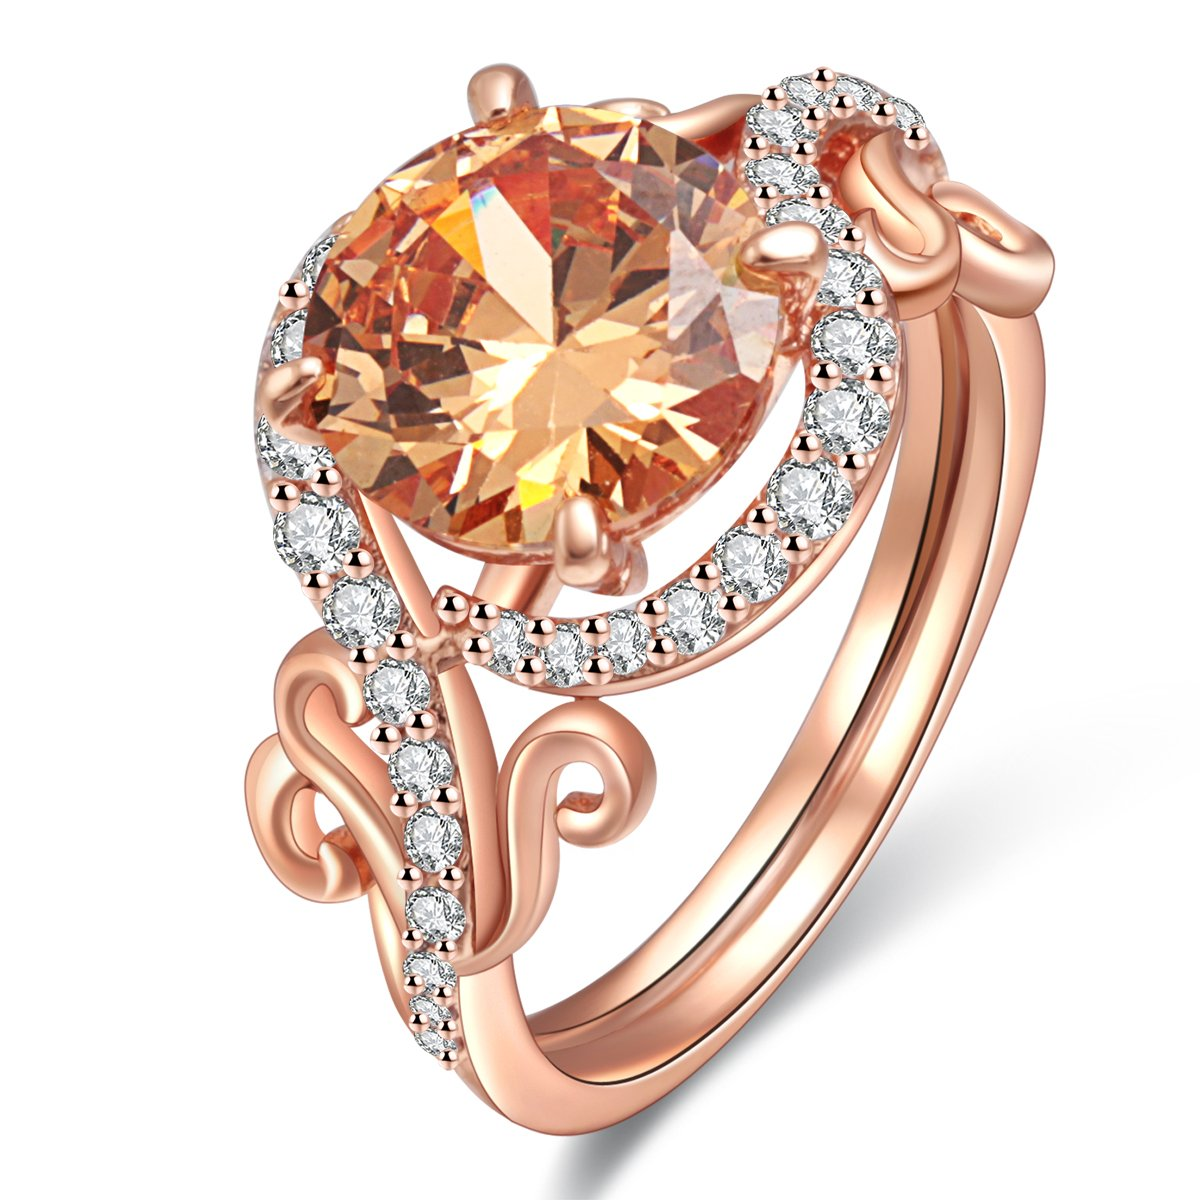 Exquisite Lady Rings AAA Cubic Zirconia Rose Gold Plated Ring Party Wedding Engagement Jewelry Size 5-10 Jiangyue JWZ2566